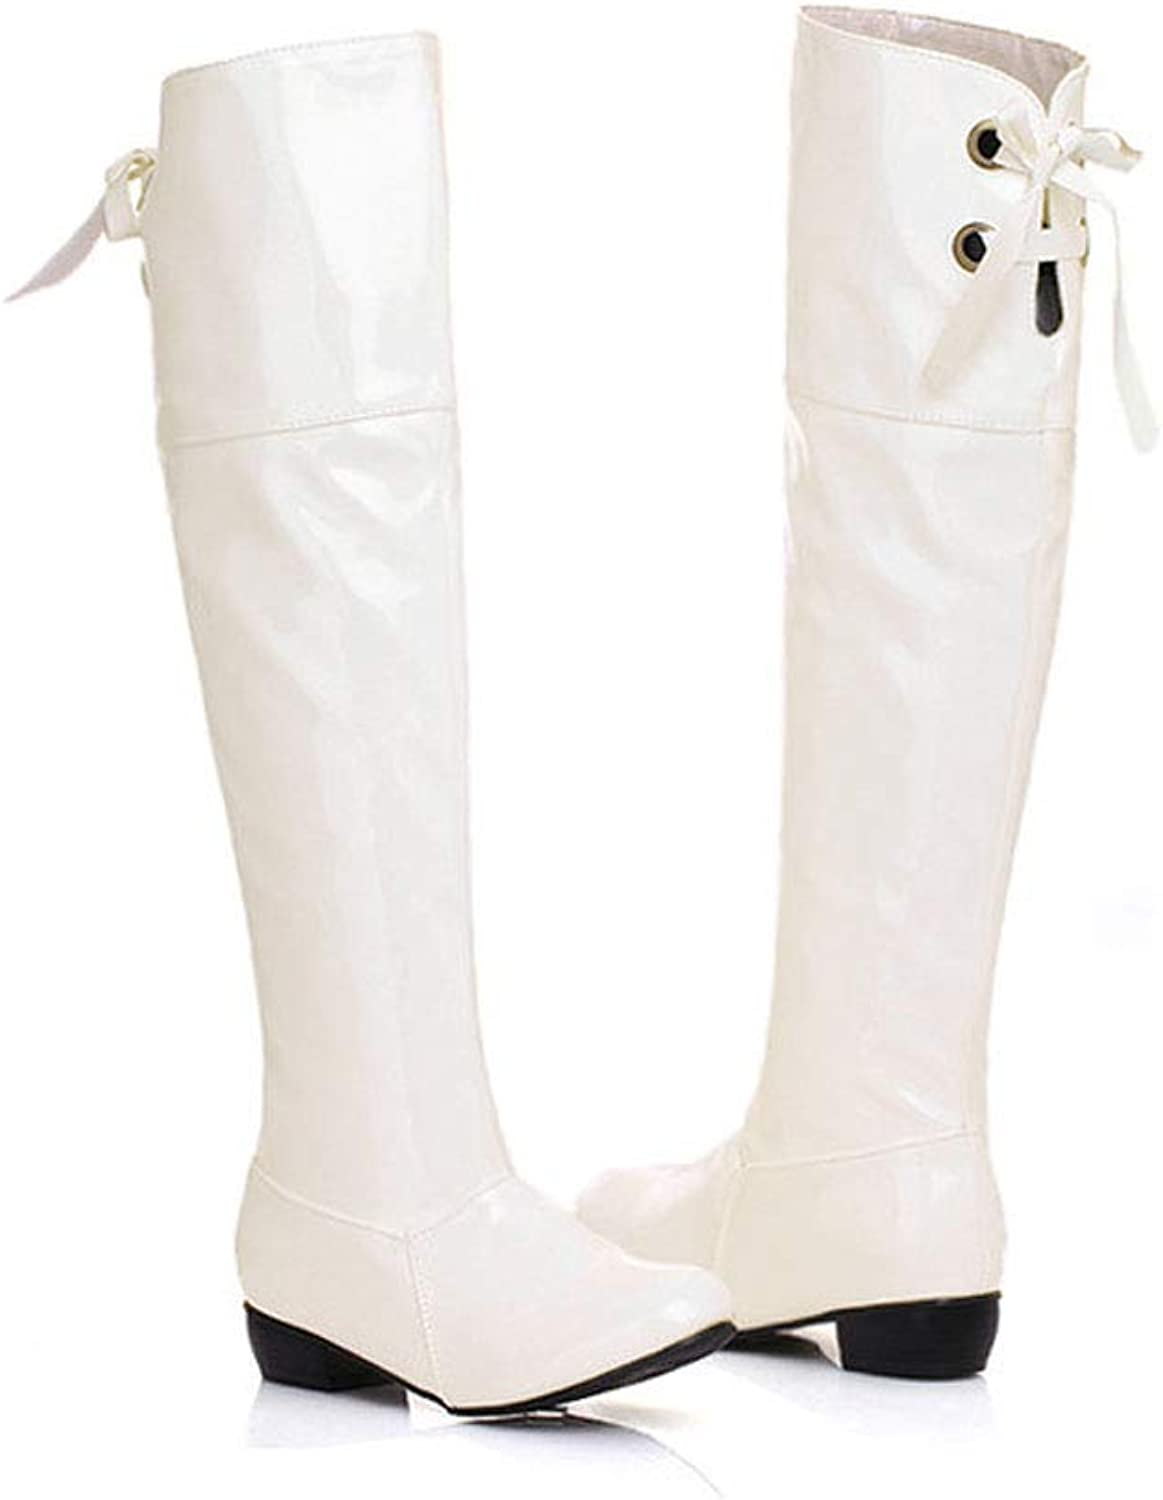 Patent Leather High Boots, Female Pointed Over The Knee Boots Waterproof Platform Low Heel Knight Boots with Thick Warm Boots for Parties, Work, Clothing Match, Daily